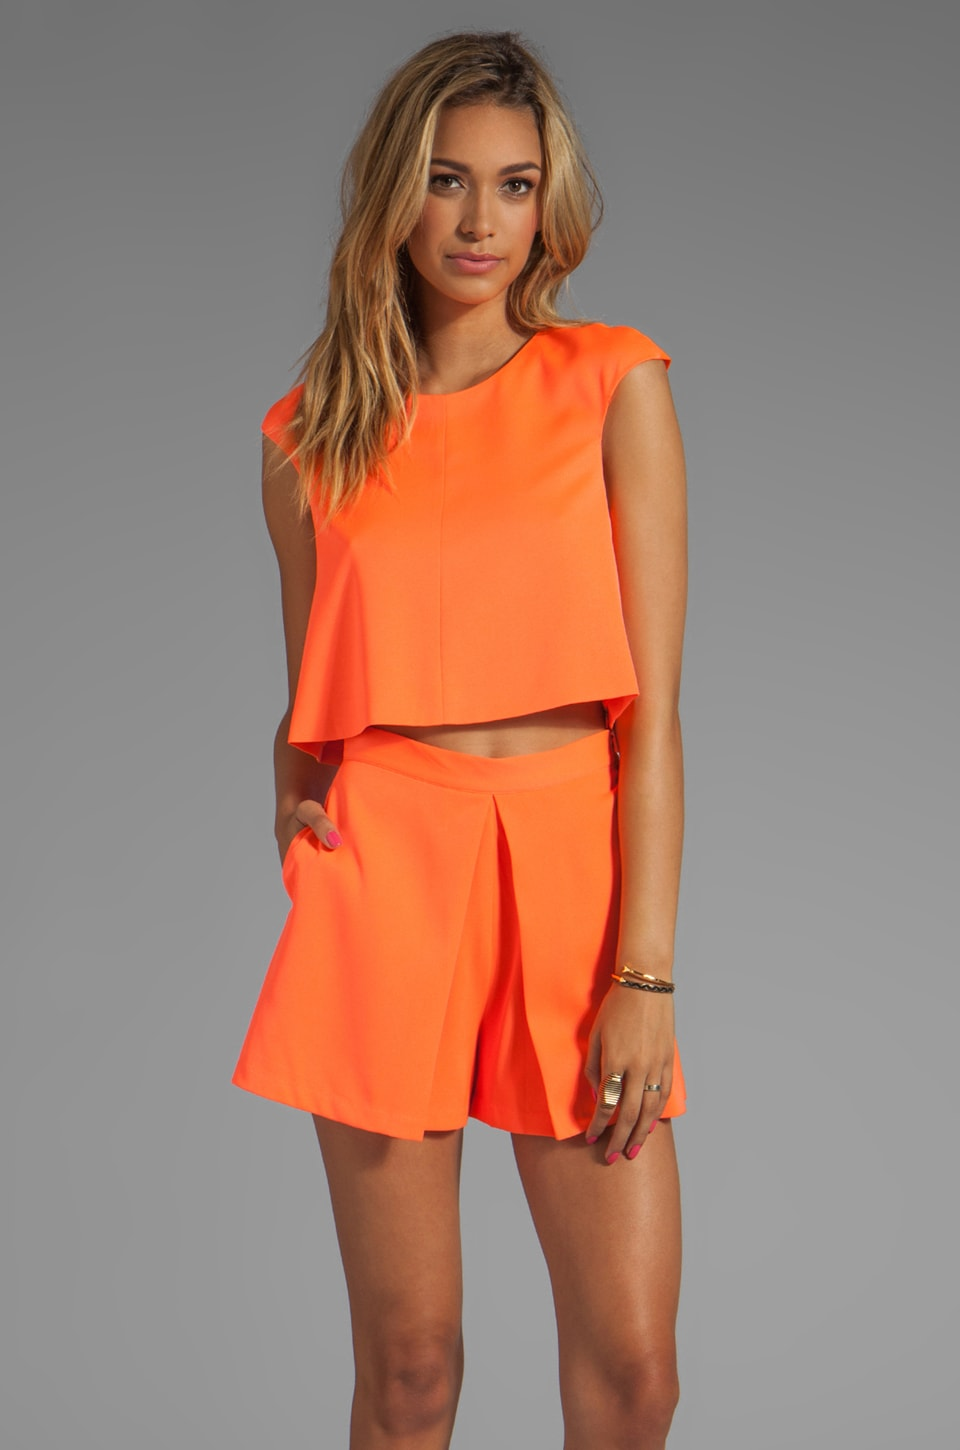 C/MEO The Mystery Top in Flame